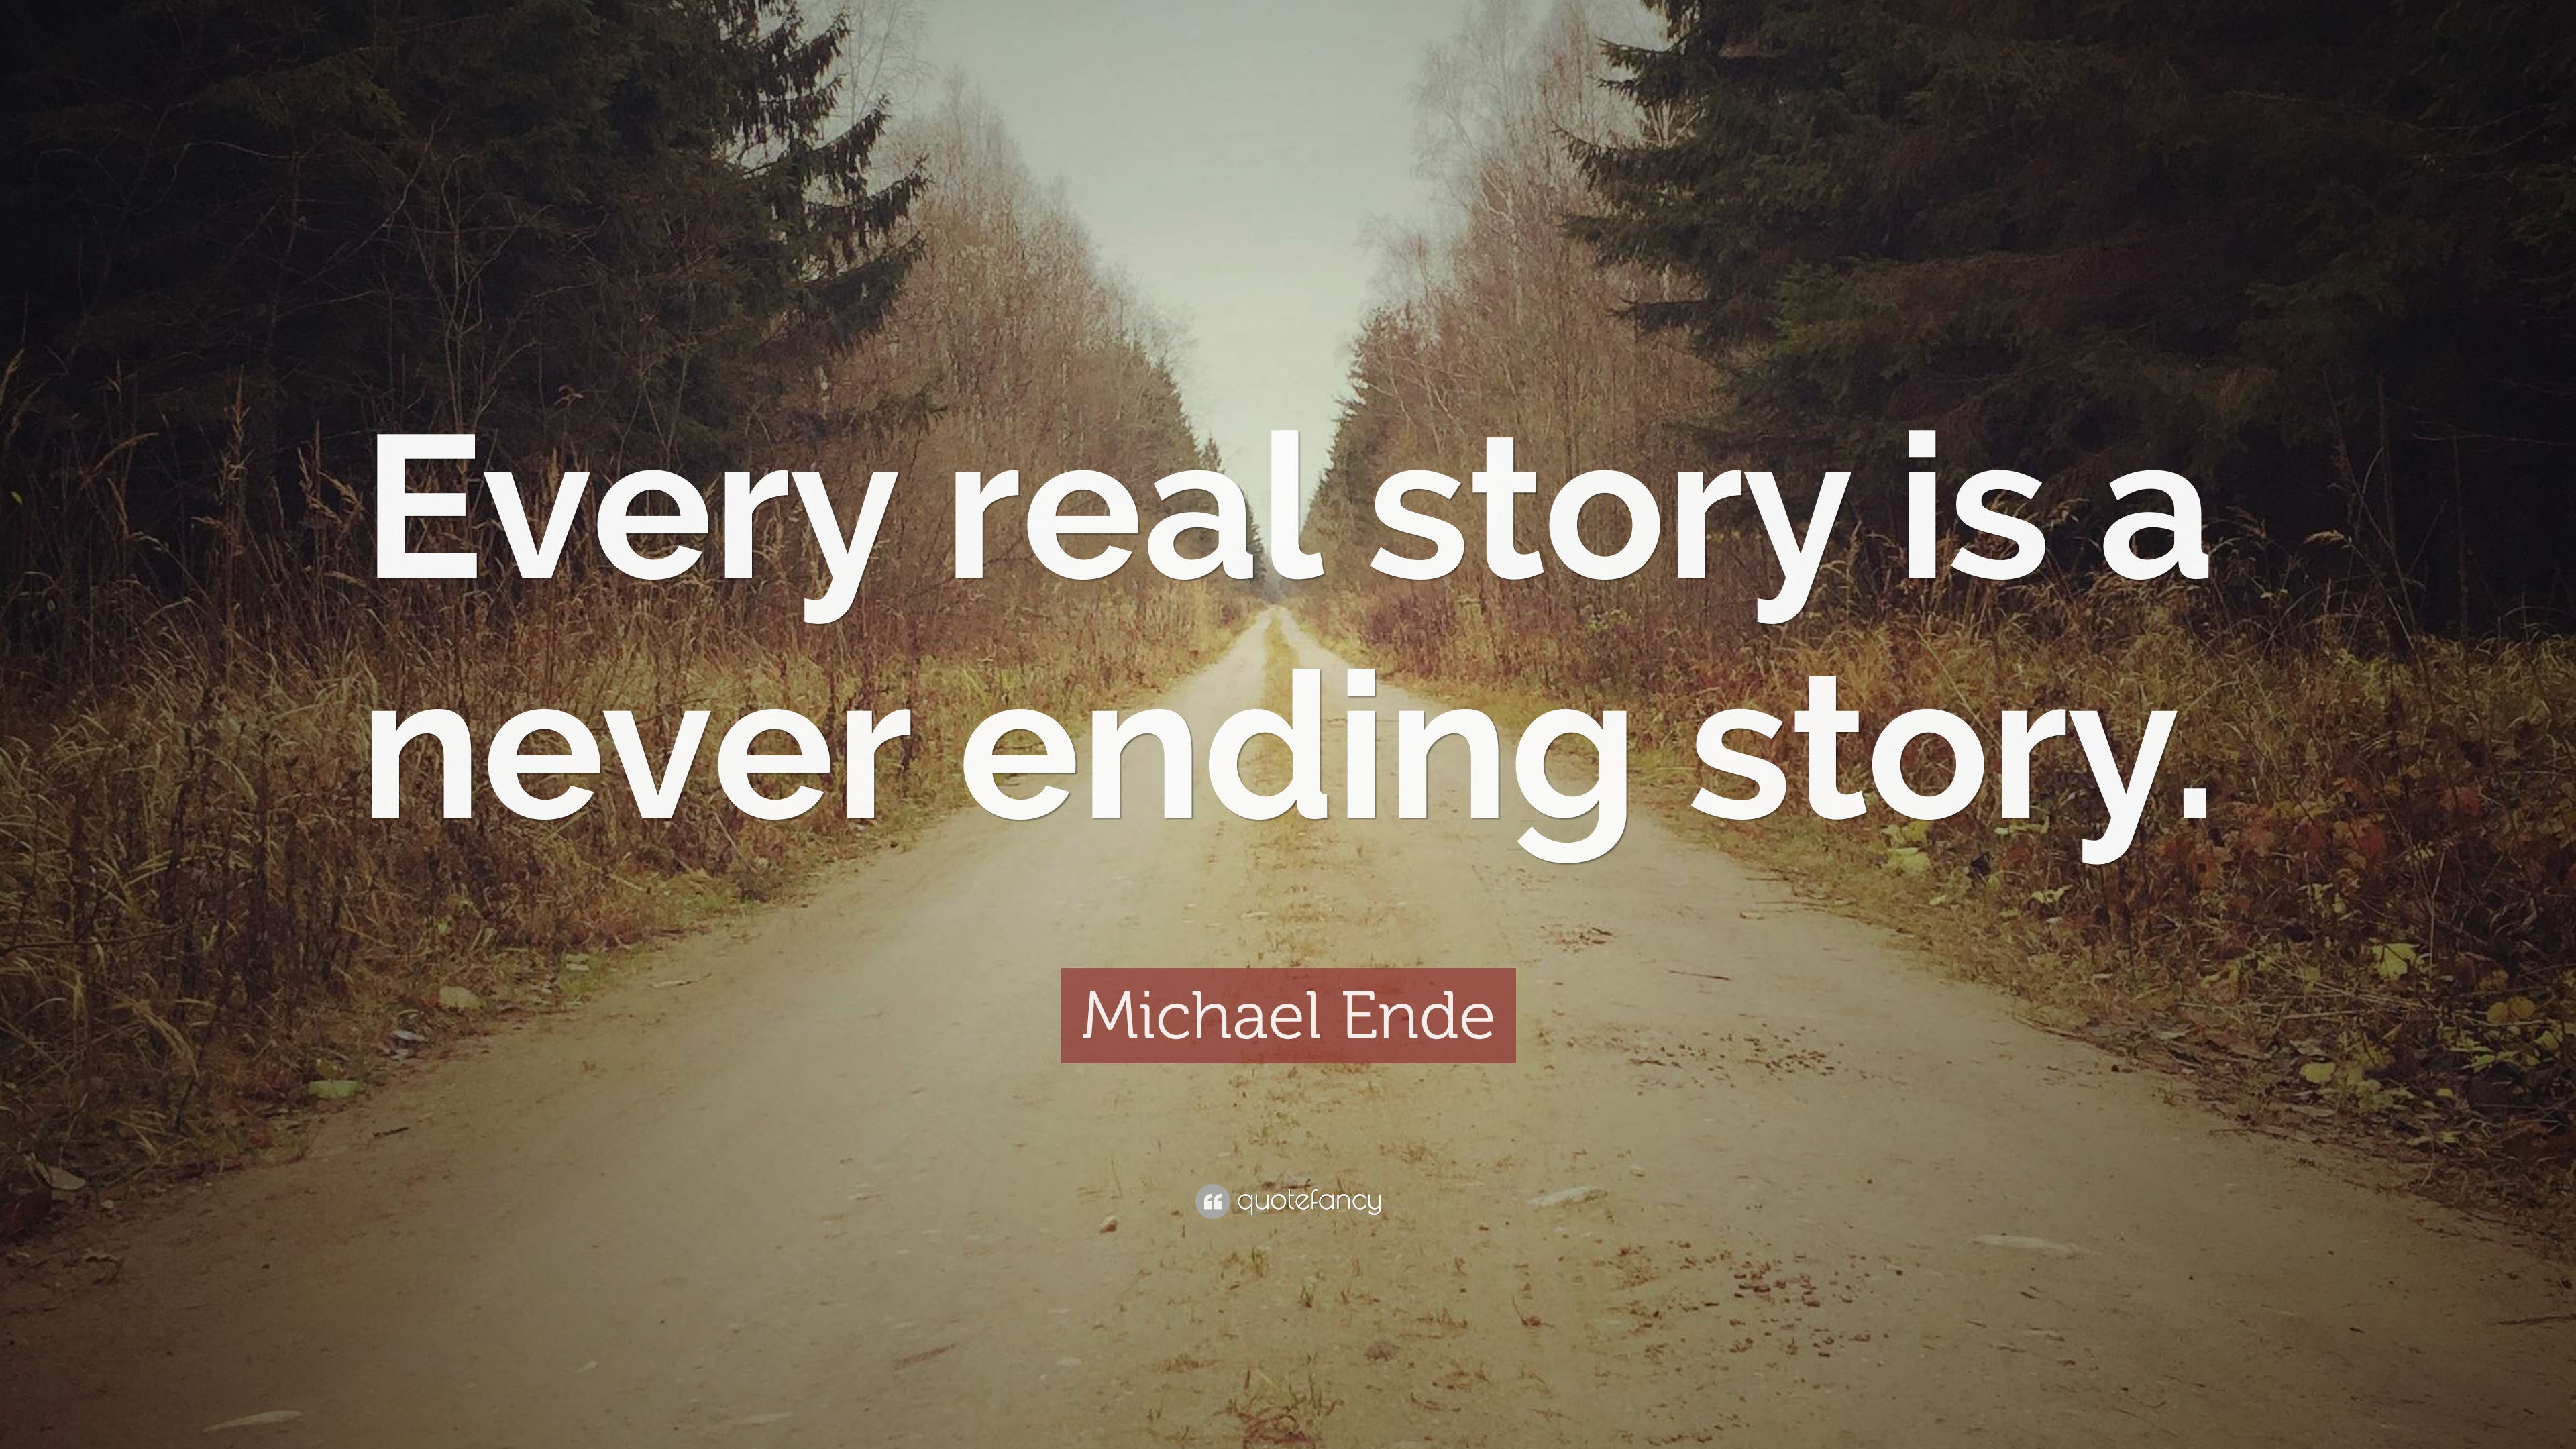 Michael Ende Quotes (31 wallpapers)   Quotefancy